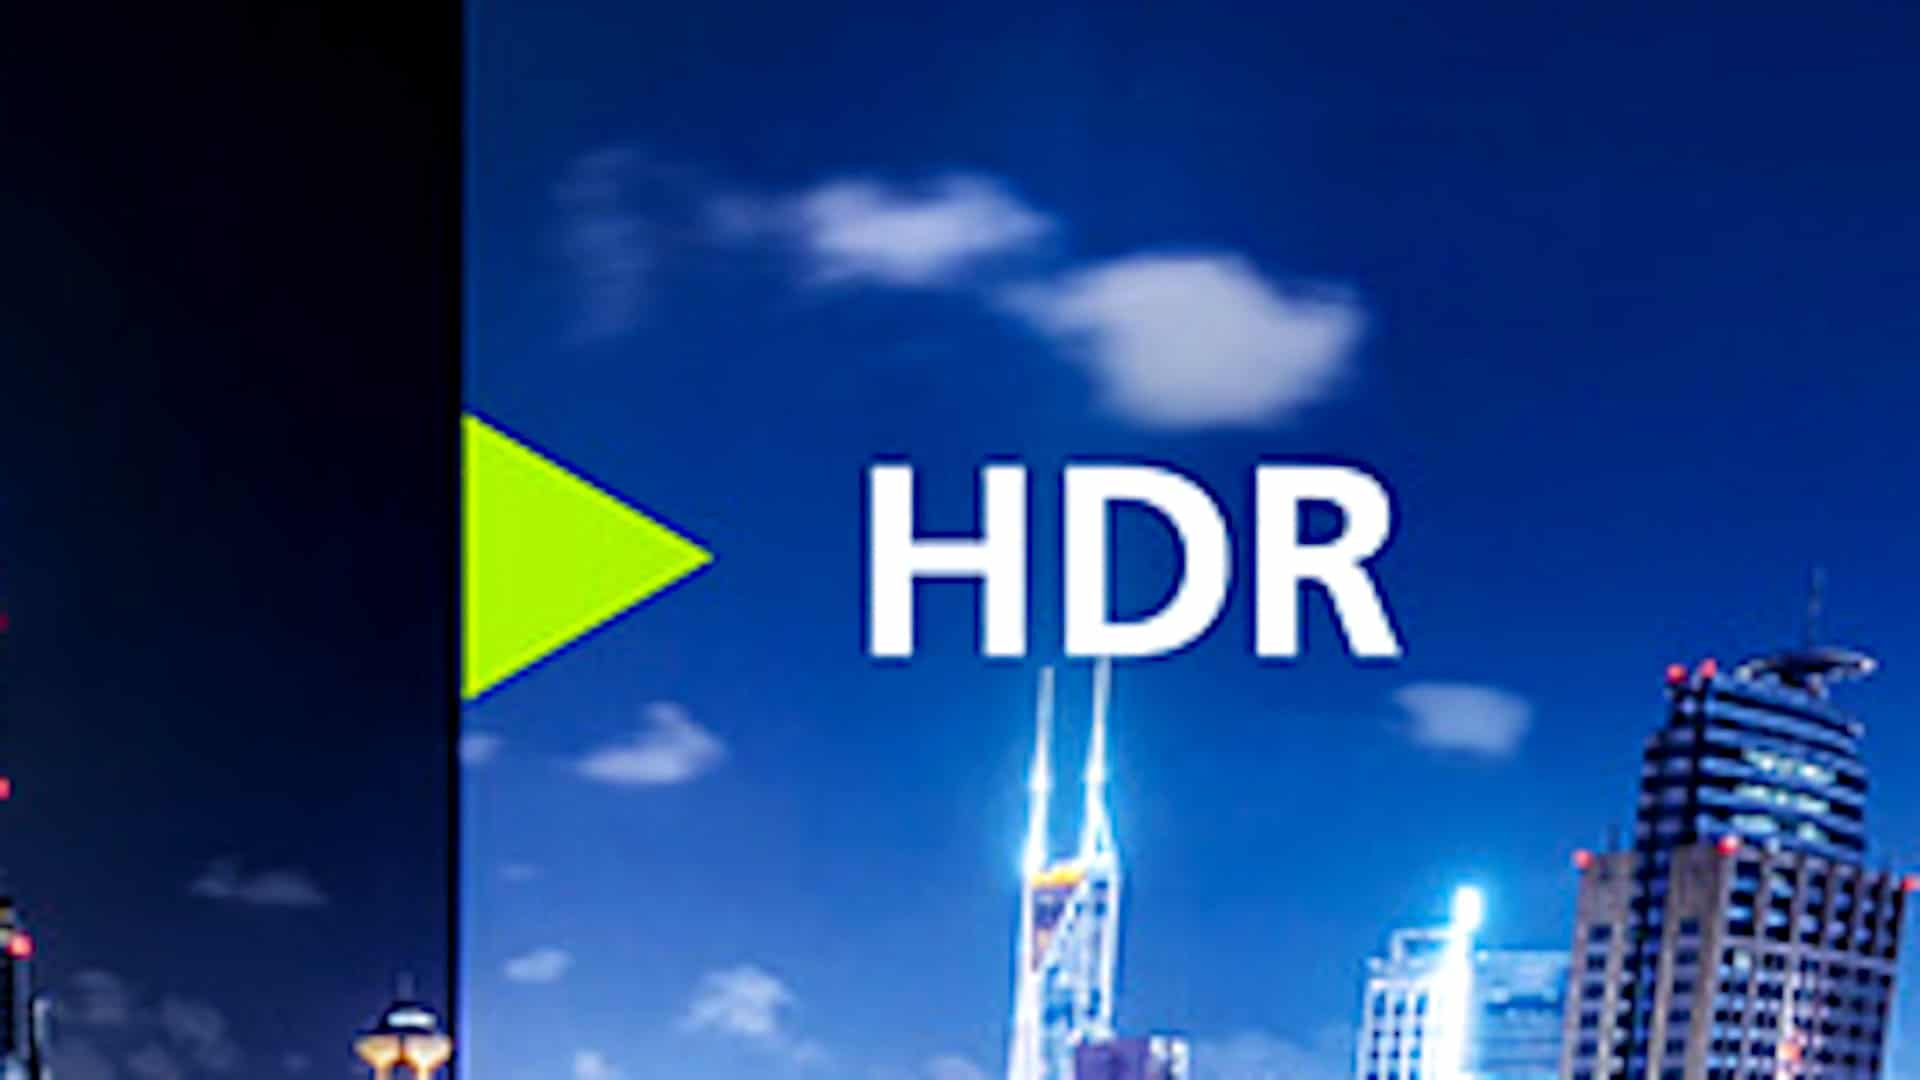 HDR Meaning Explained